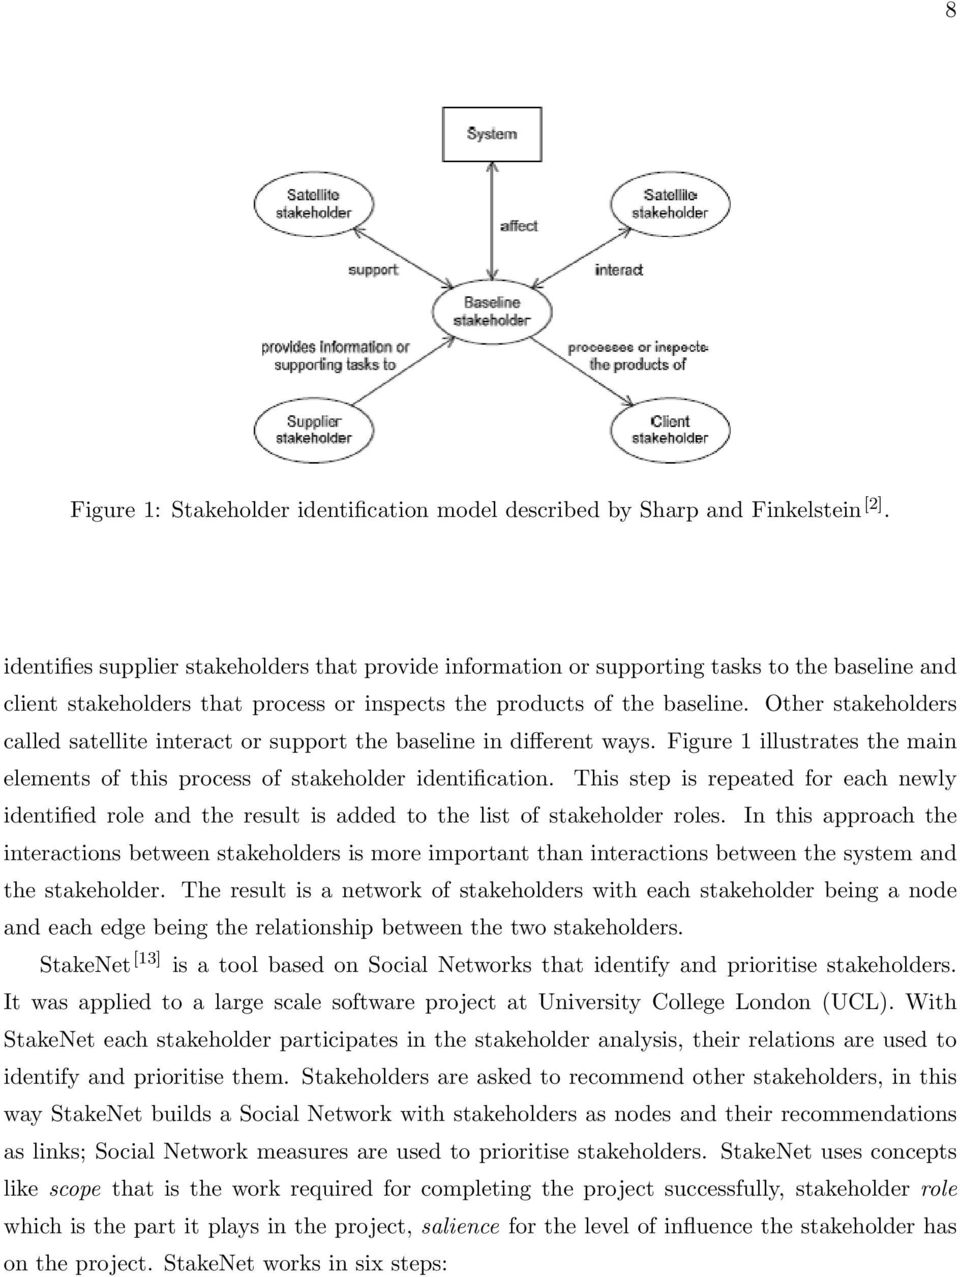 Other stakeholders called satellite interact or support the baseline in different ways. Figure 1 illustrates the main elements of this process of stakeholder identification.